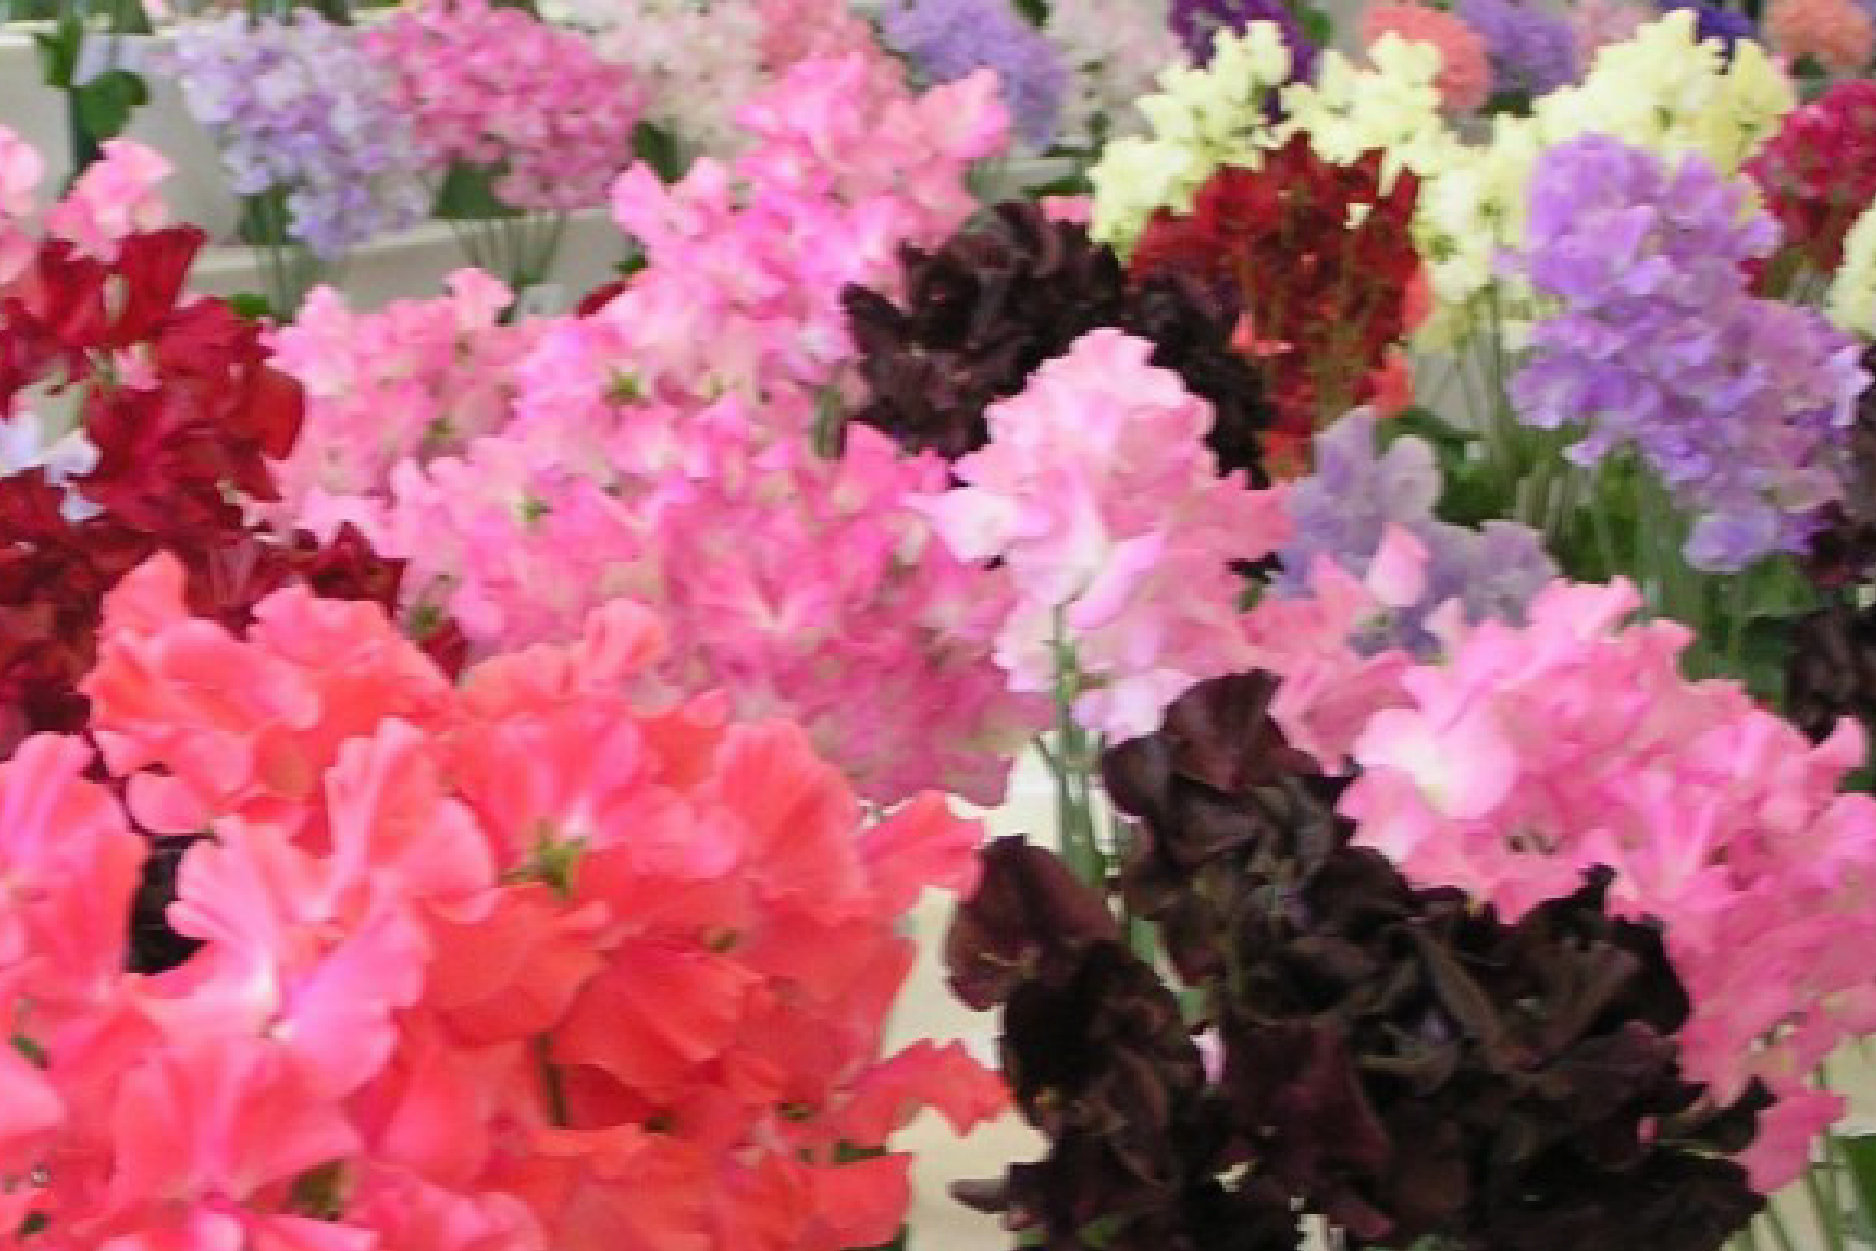 The National Sweet Pea Society